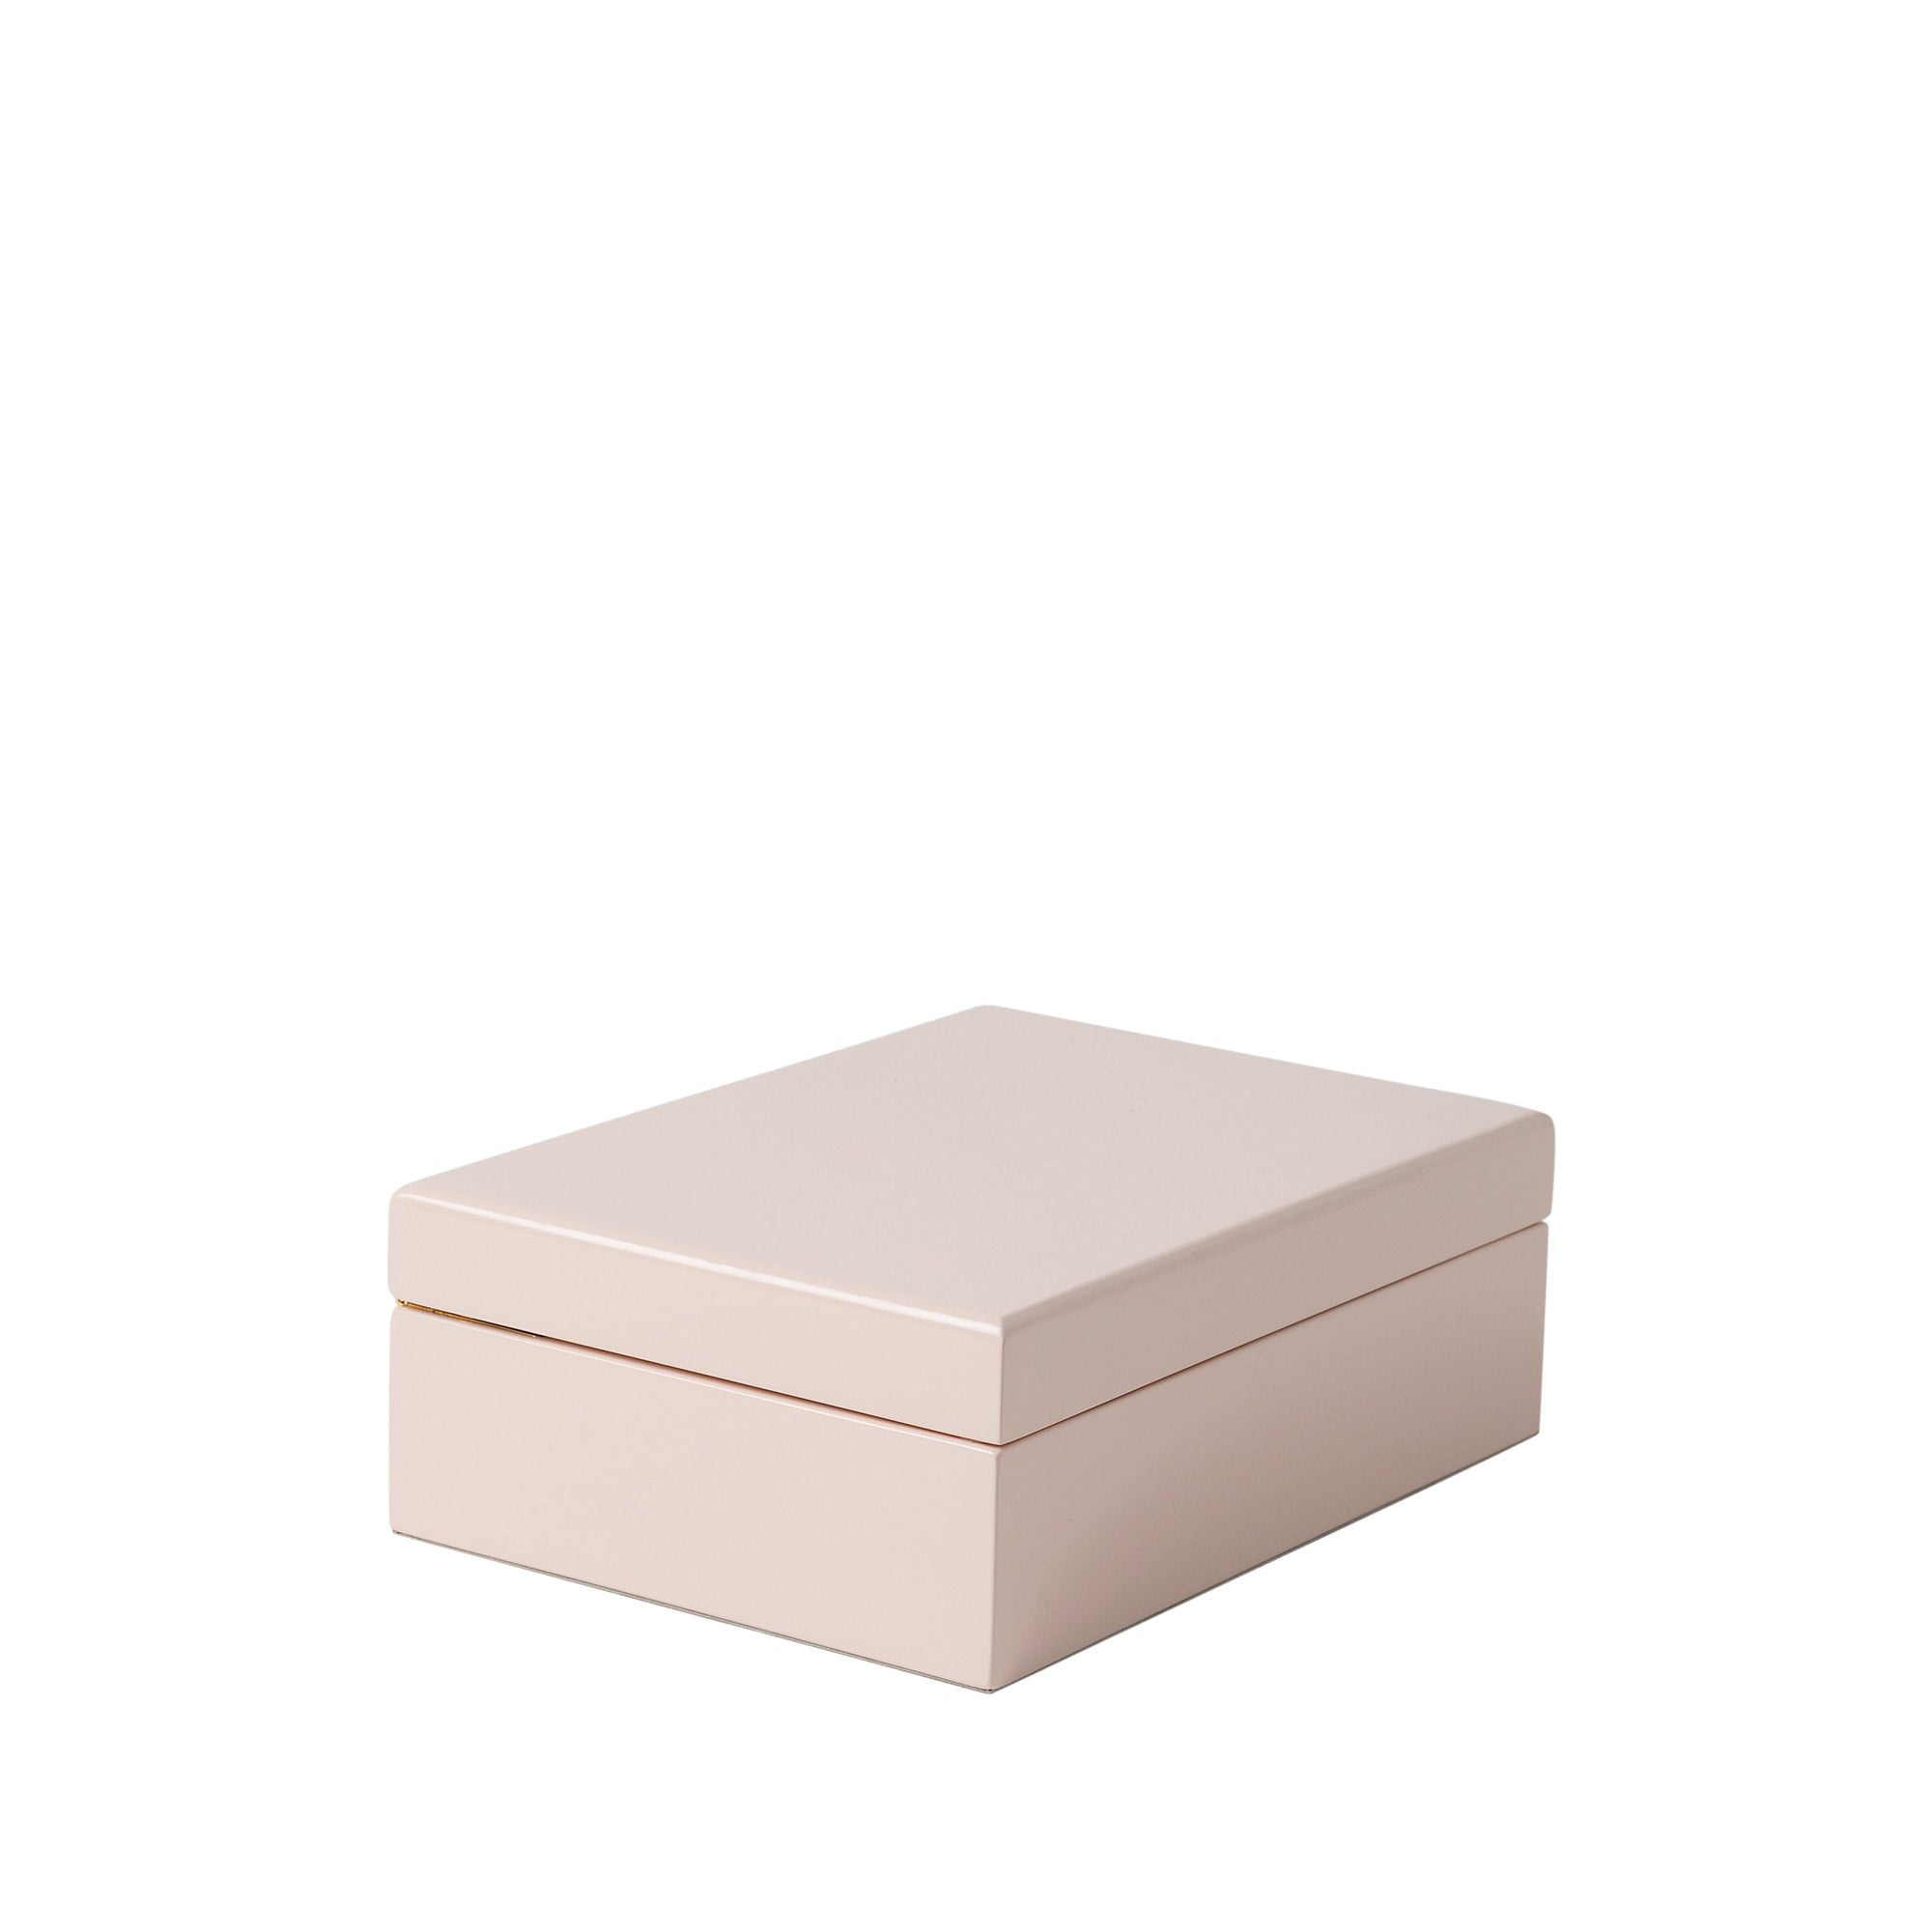 Jewellery Box - Pink - Citta Design - NZ Stockist - Shop Online Now